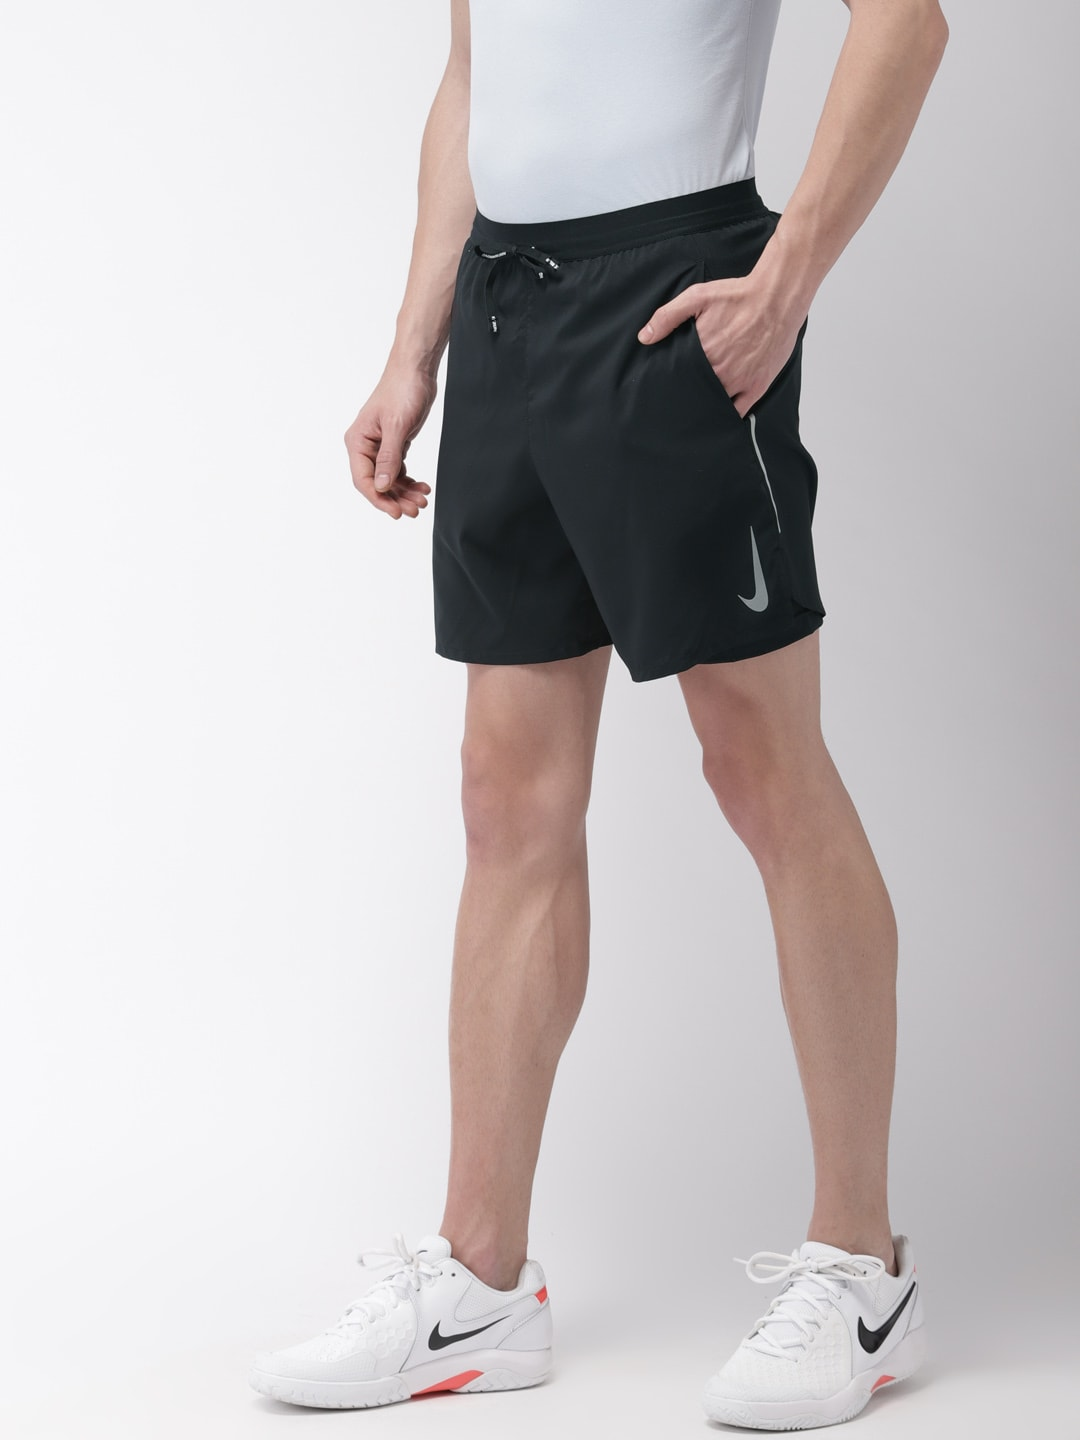 b15b32f2d4c0 Nike Polyester Shorts - Buy Nike Polyester Shorts online in India